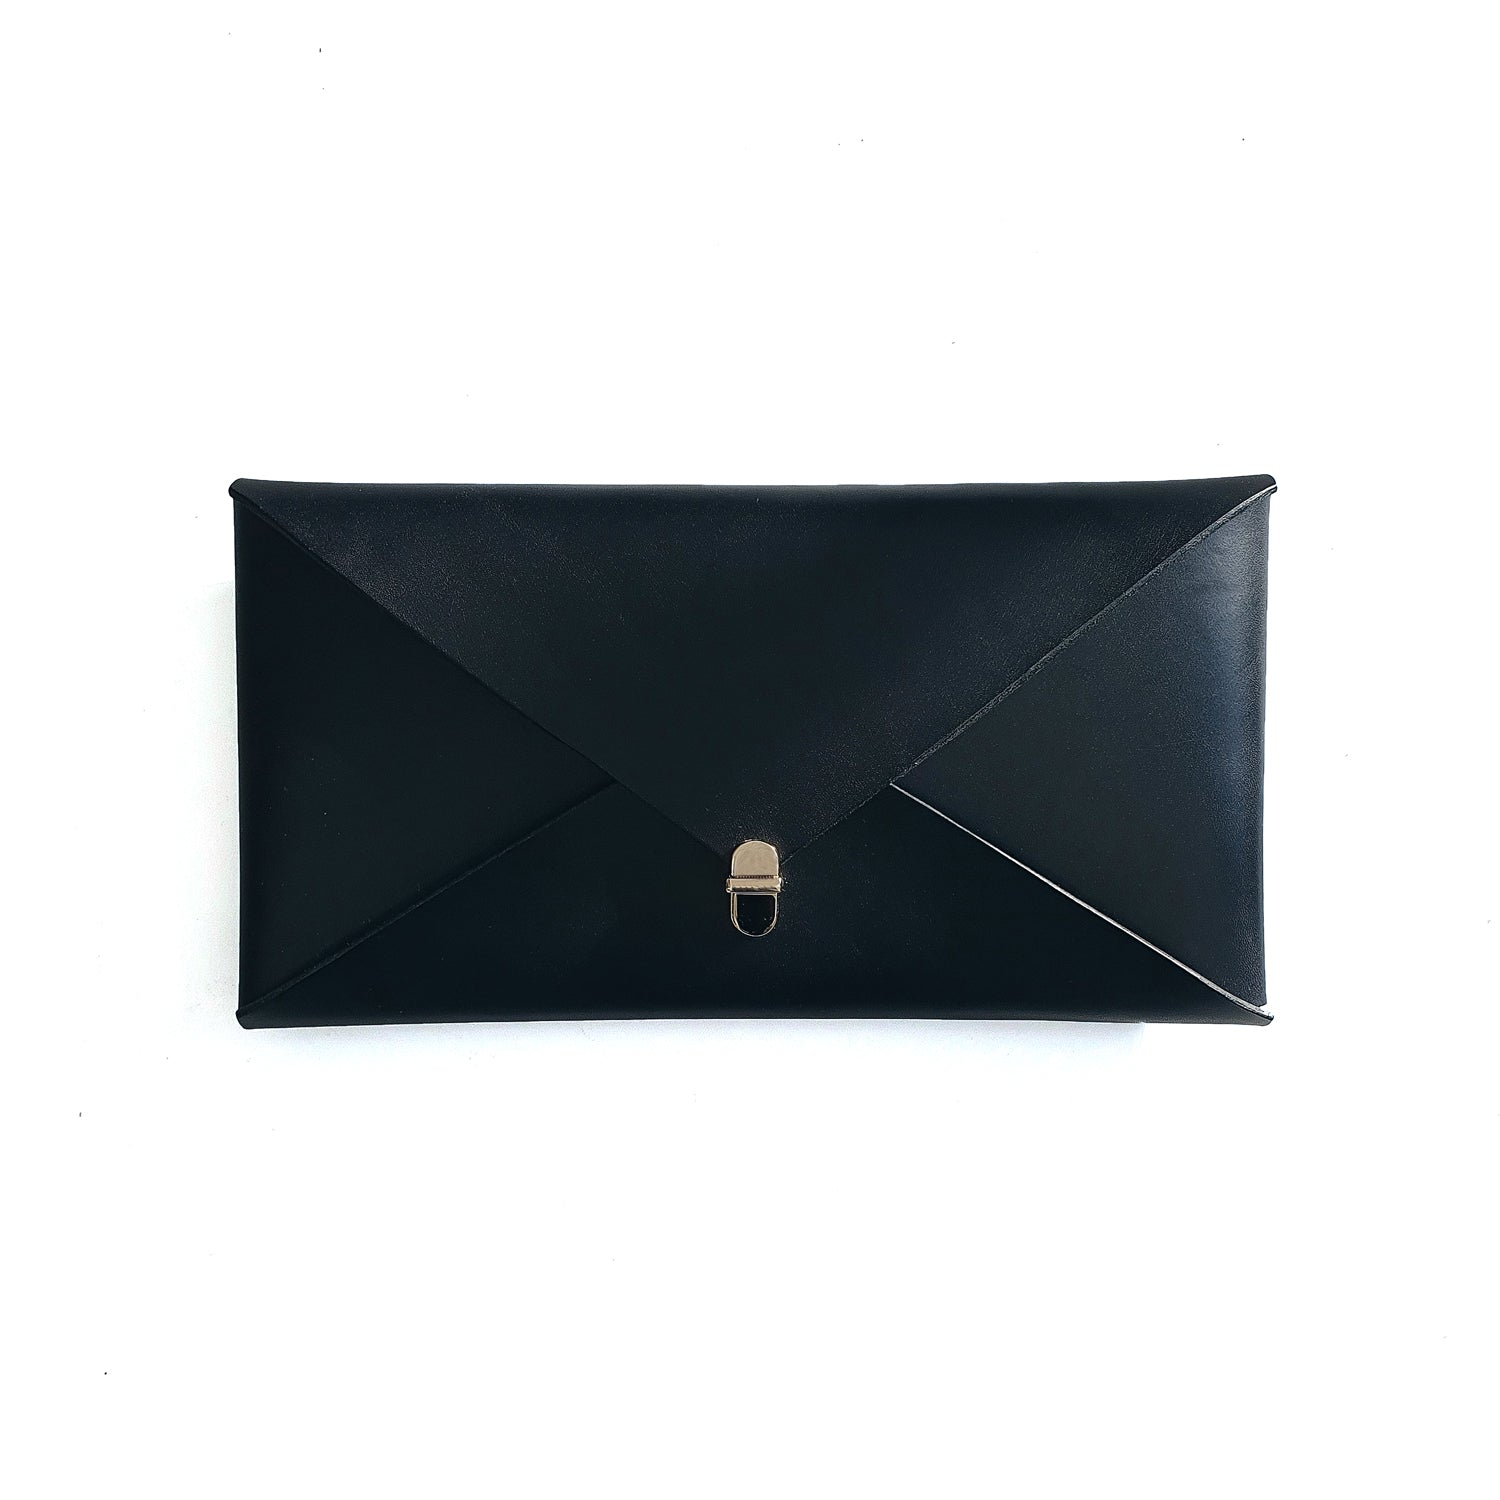 Wide Envelope Clutch in Black